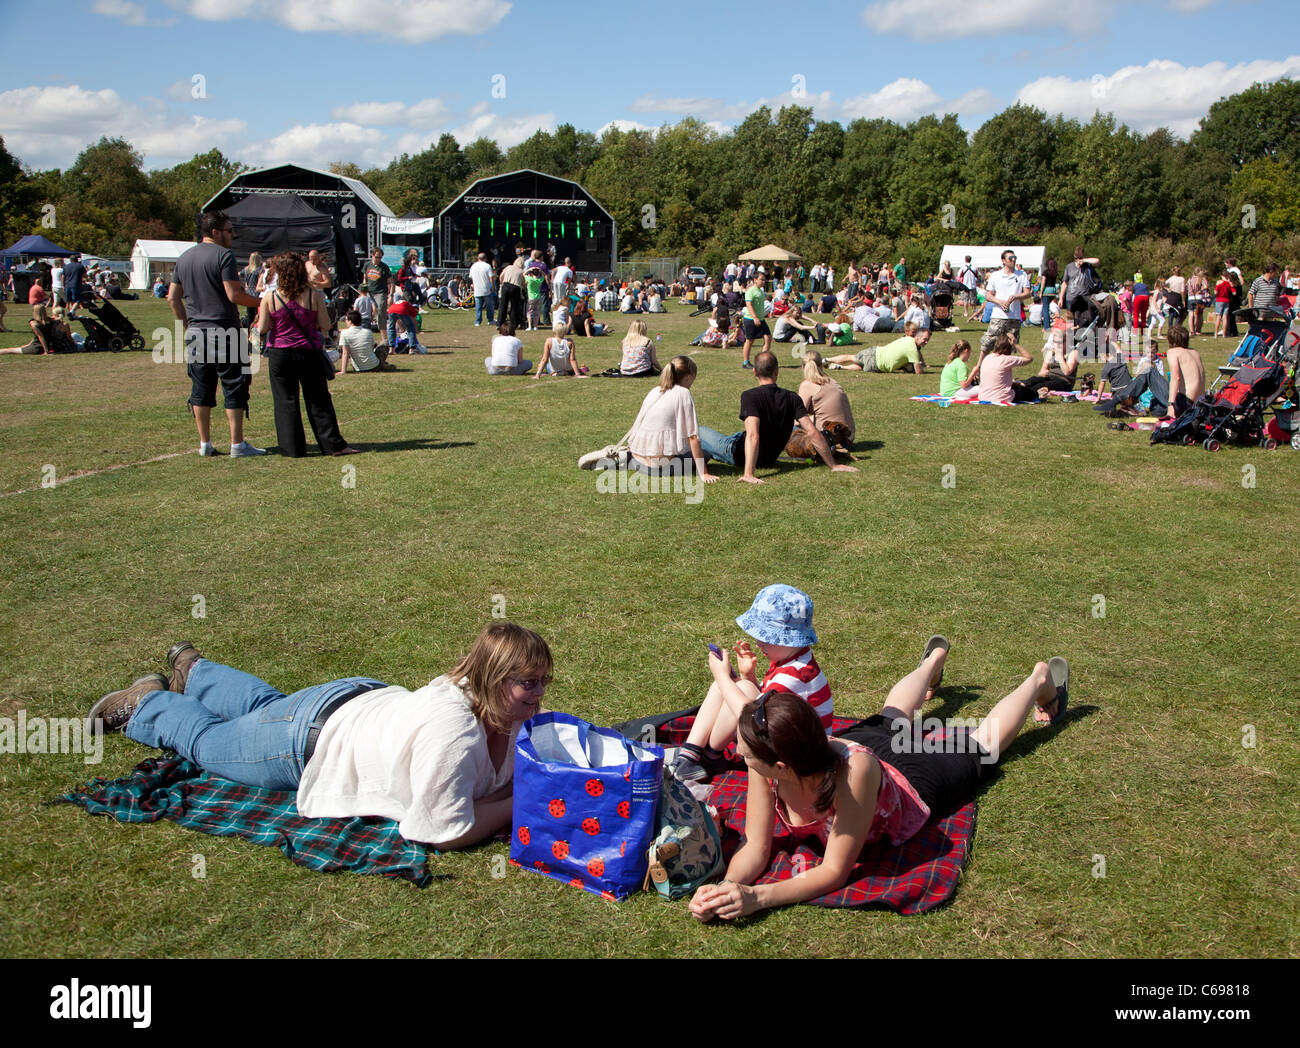 Audience at a Family Festival in Worcestershire, UK. - Stock Image